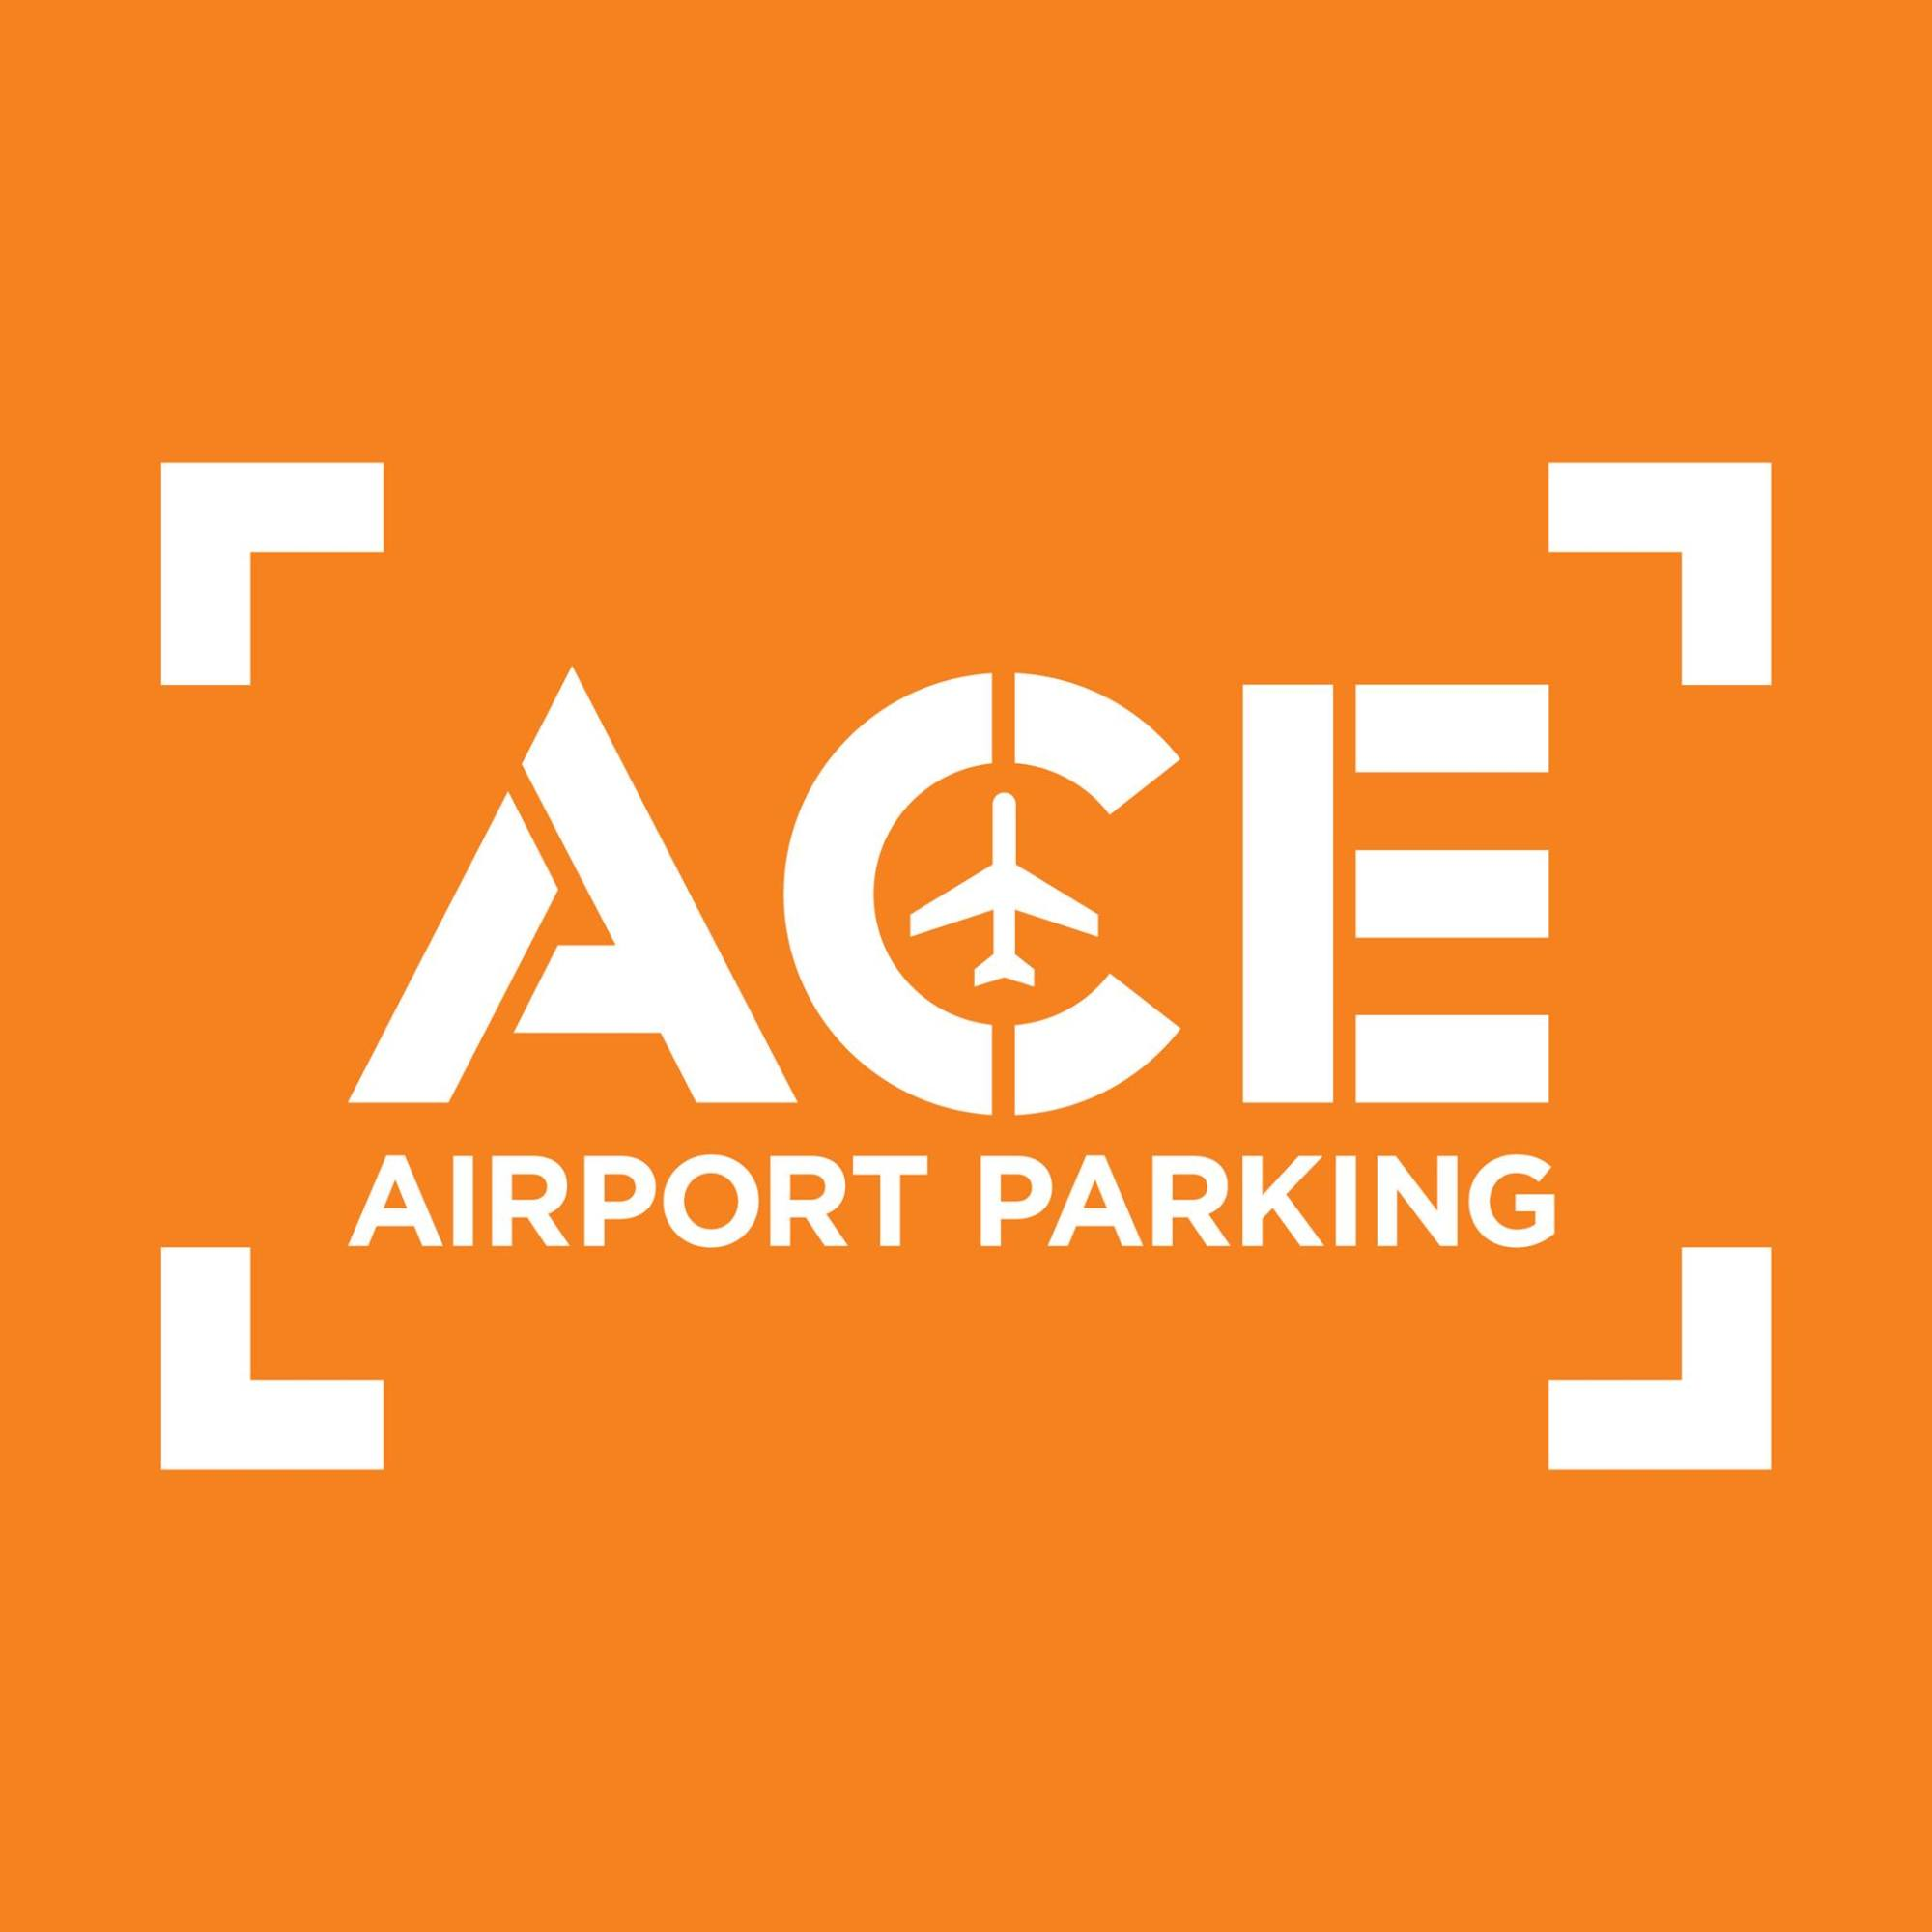 hight resolution of ace airport parking